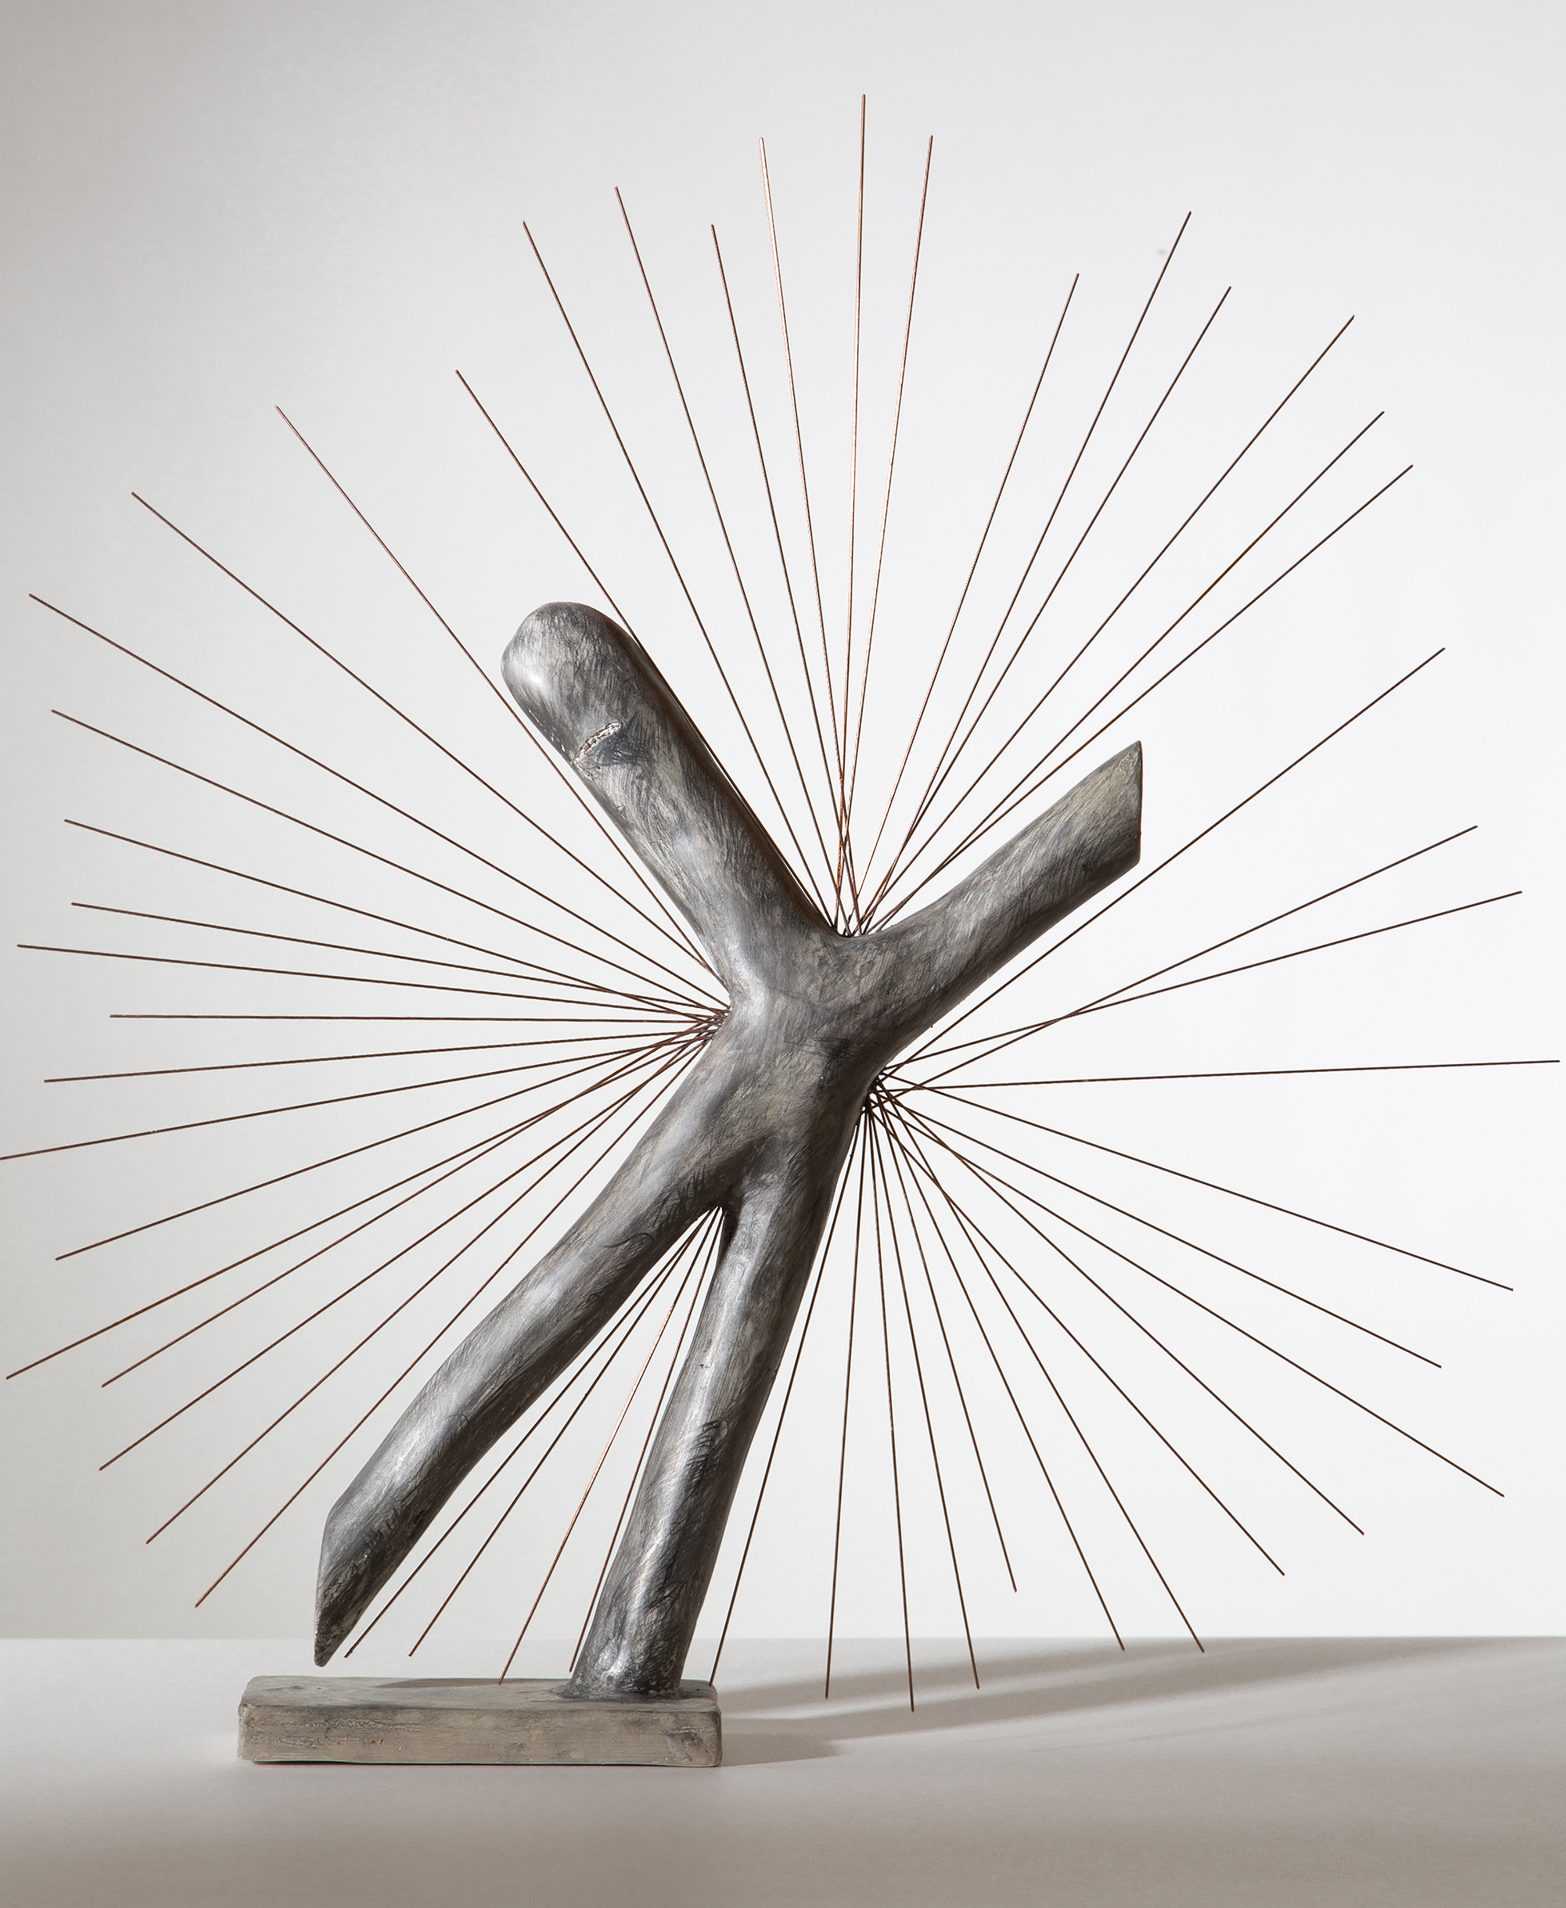 Enrico David, Tools and Toys III,2014 ©Enrico David Courtesy Michael Werner Gallery, New York and London